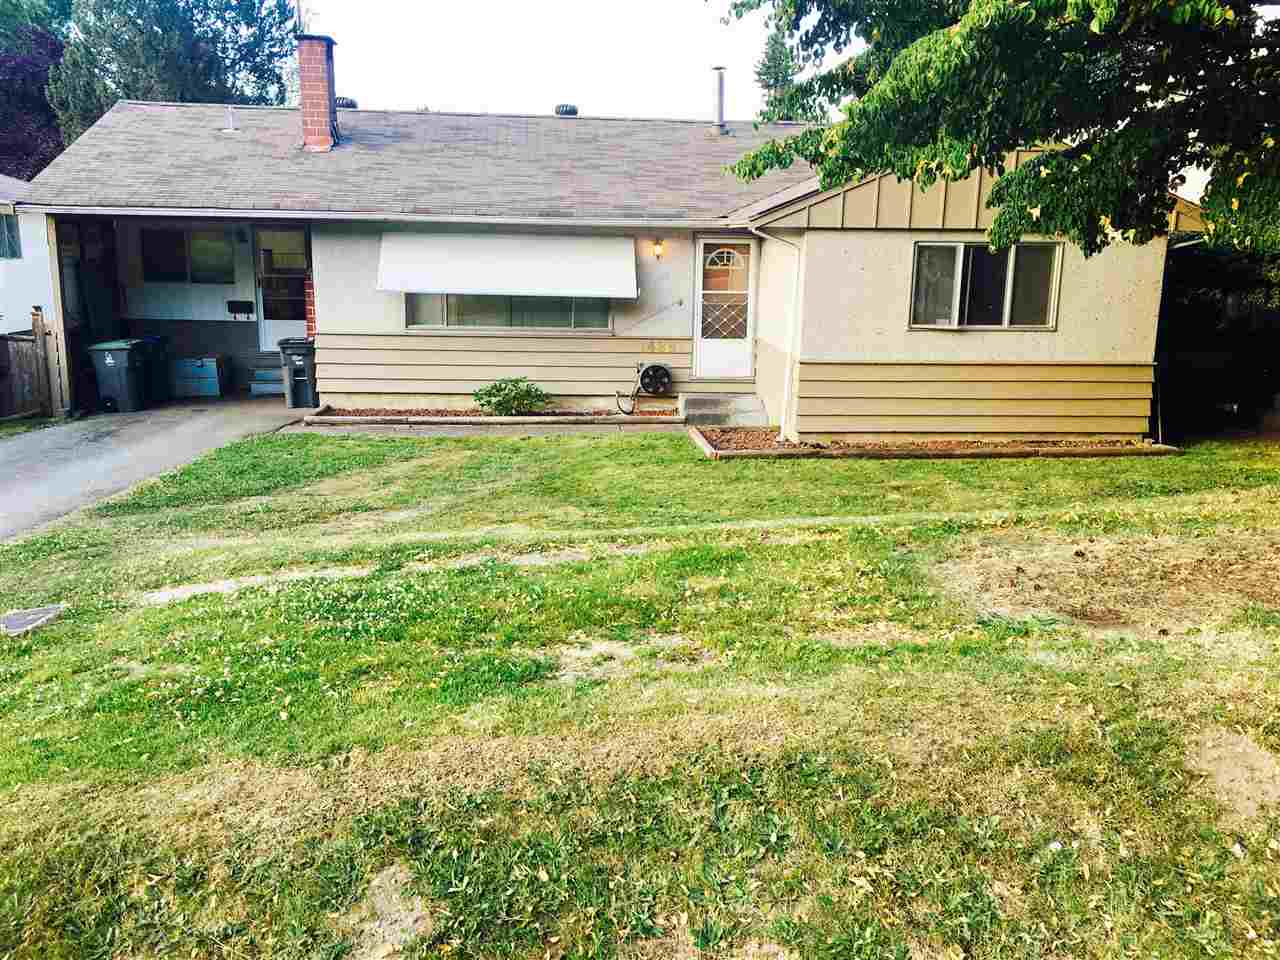 Amazing LOT in the highly sought after Bolivar Heights. This rare 75x137 sized lot has 3 bedrooms, 1 bathroom with an exceptionally large and bright back yard. This house is perfect for a first time home buyer, or for a builder looking to build a custom home. This rancher/bungalow style home is a must see. Won't last long! ***OPEN HOUSE - Sunday Oct 1st, 2pm-4pm***